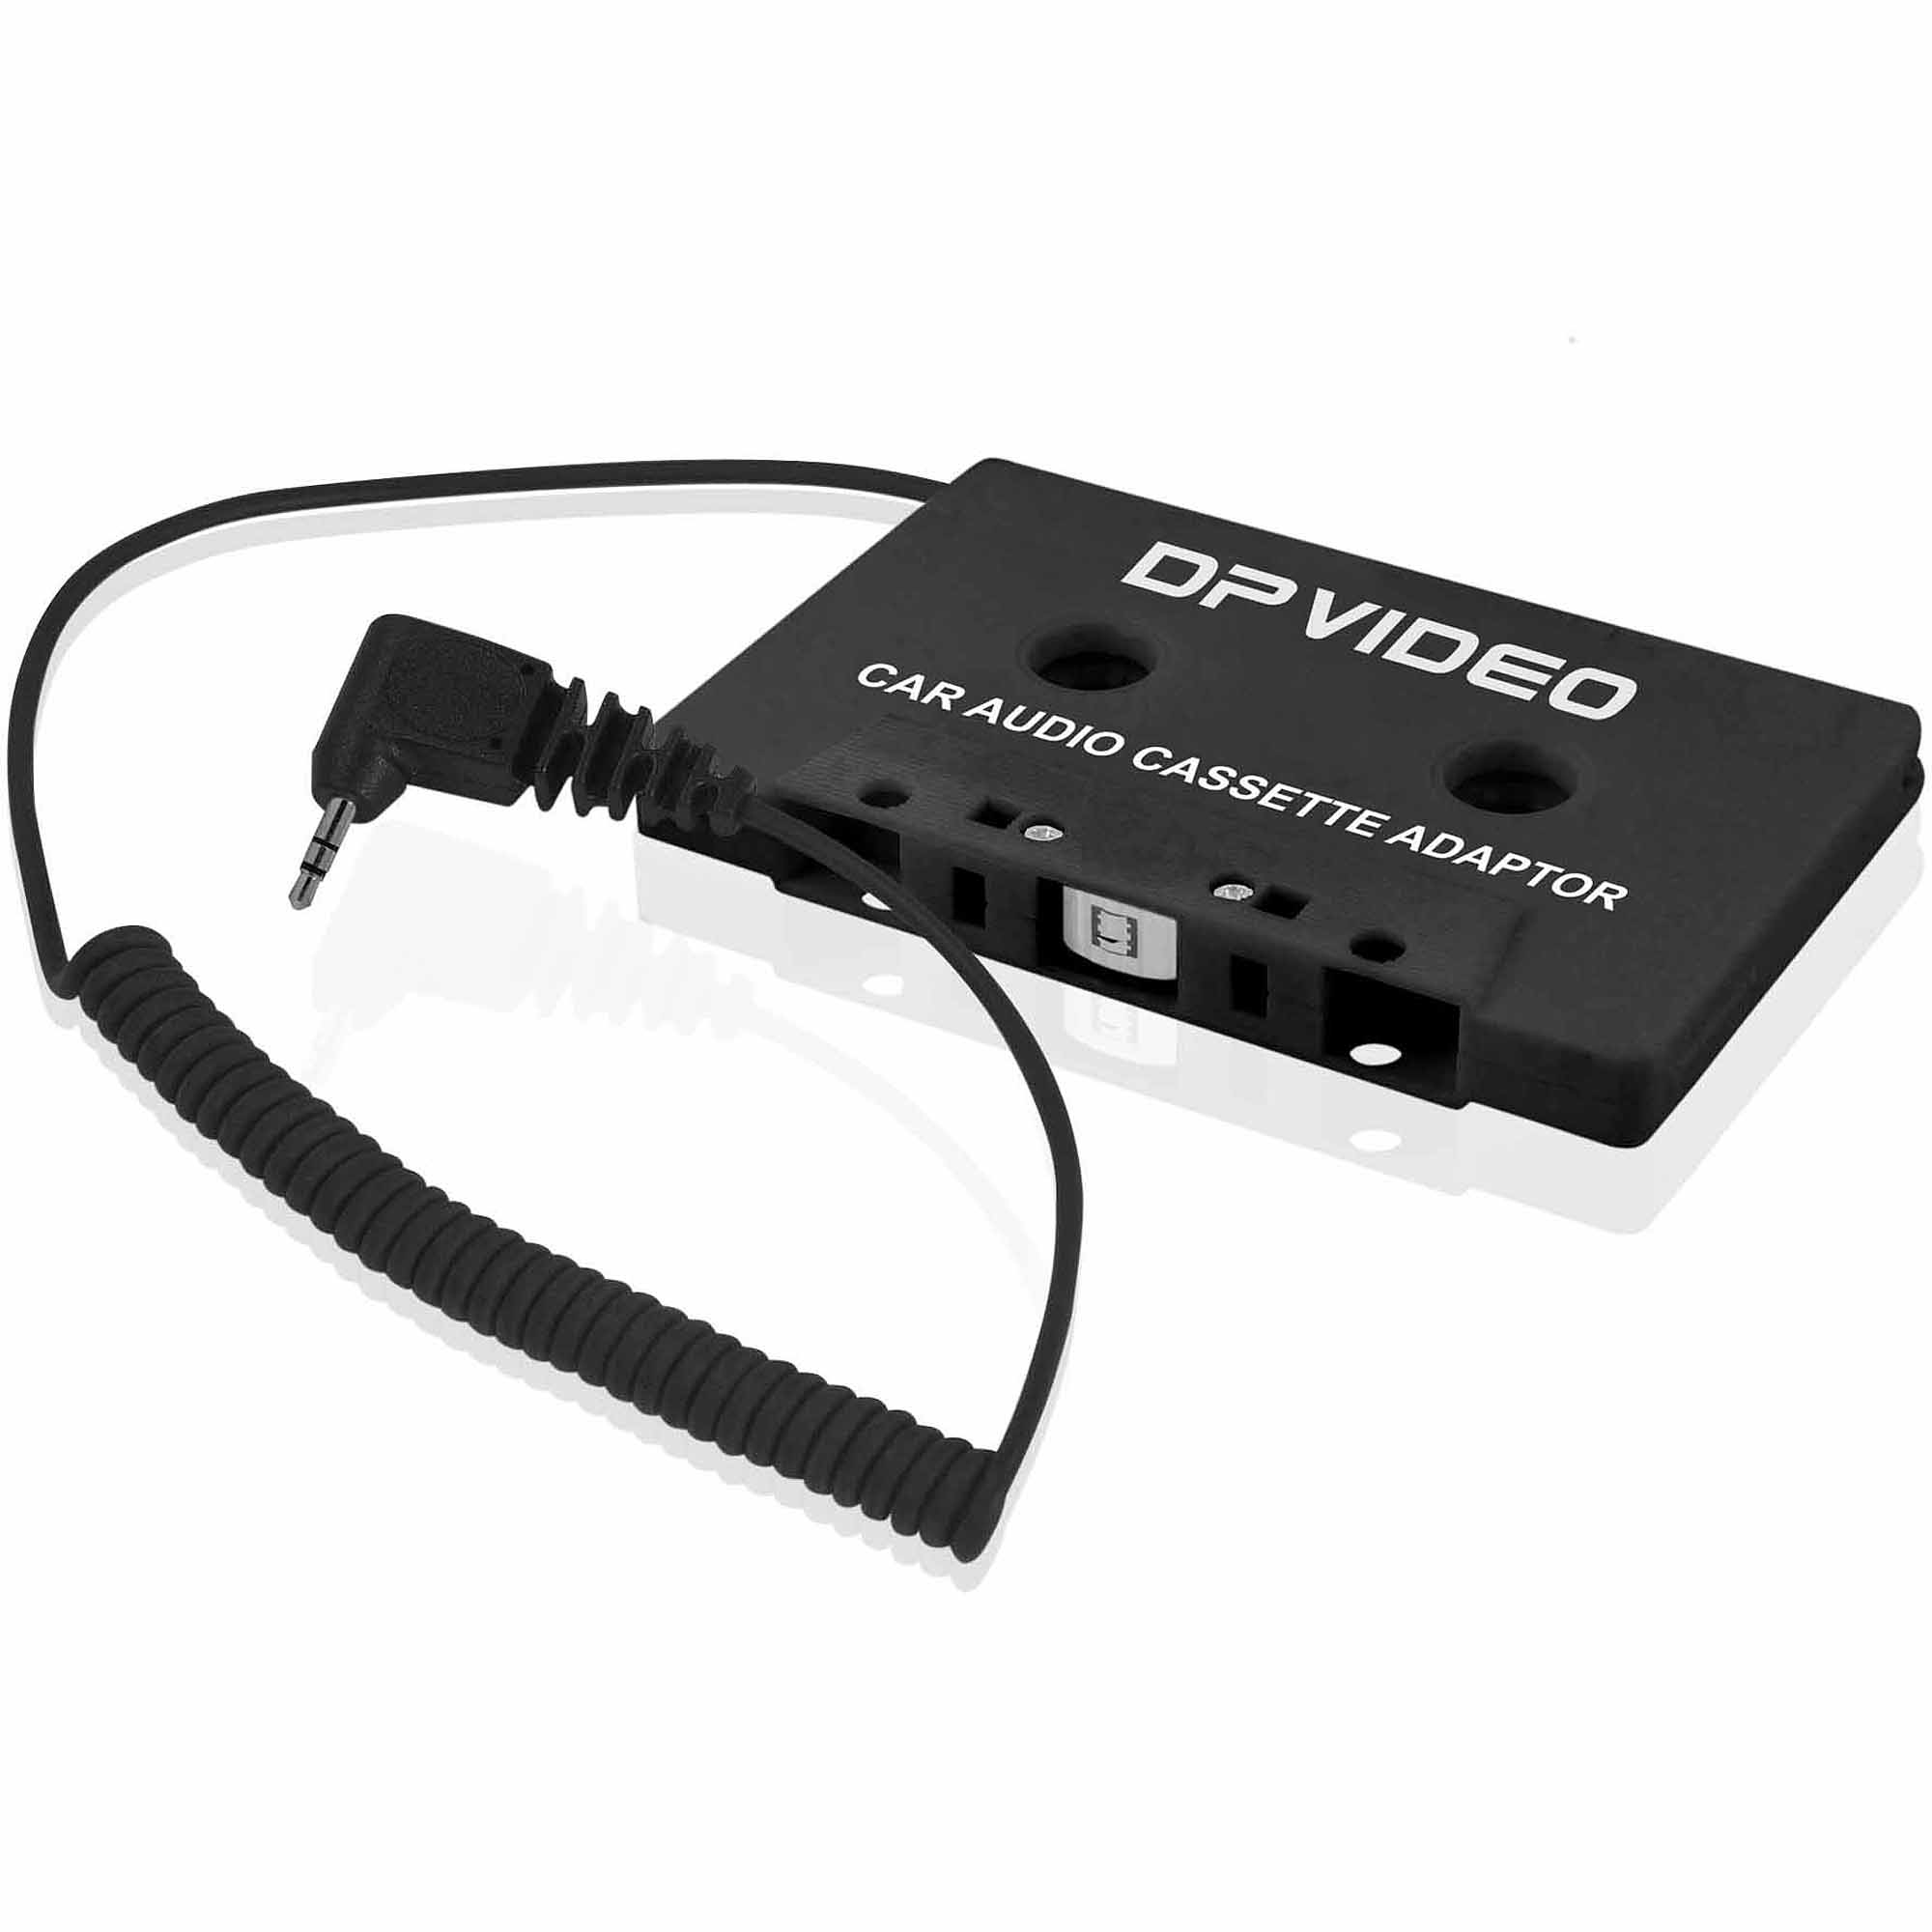 DP Audio Universal Car Cassette Adapter